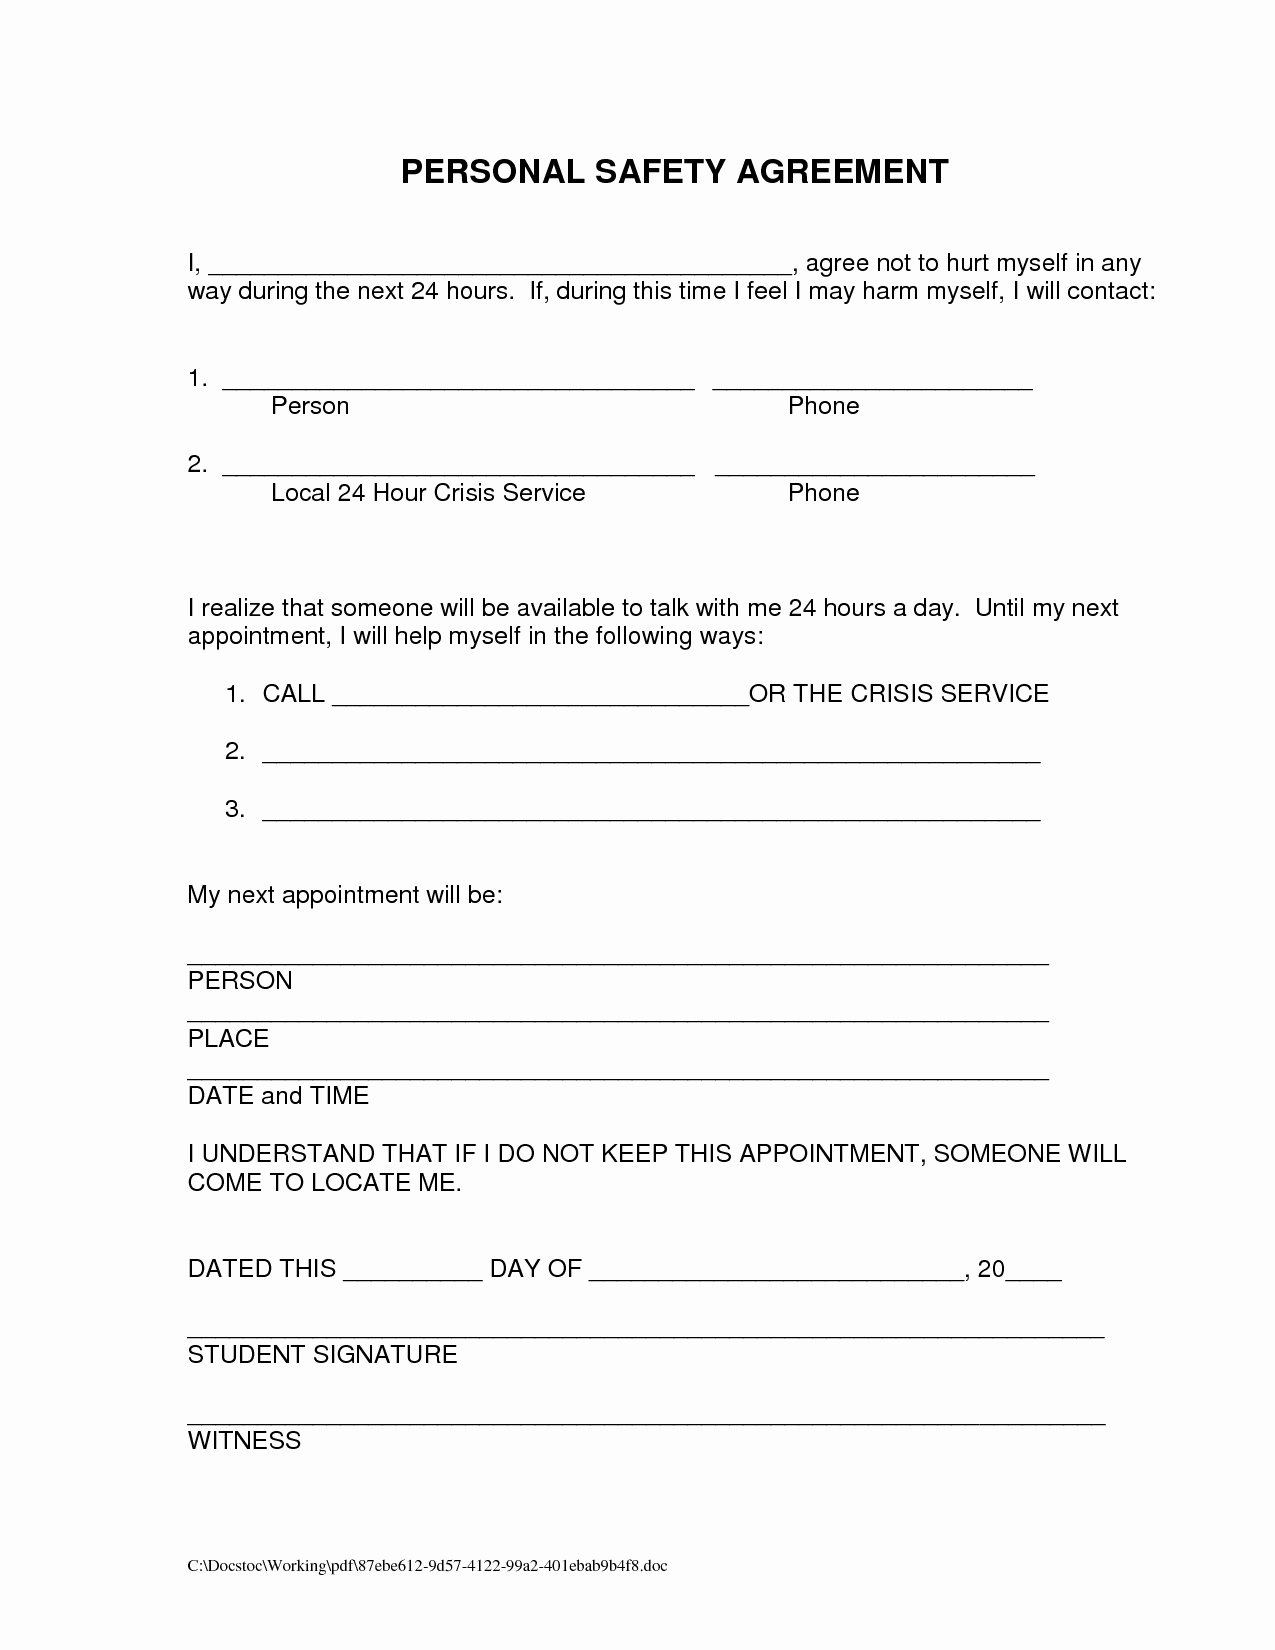 Fmcsa Safety Management Plan Template Best Of Domestic Violence Safety Plan Printable